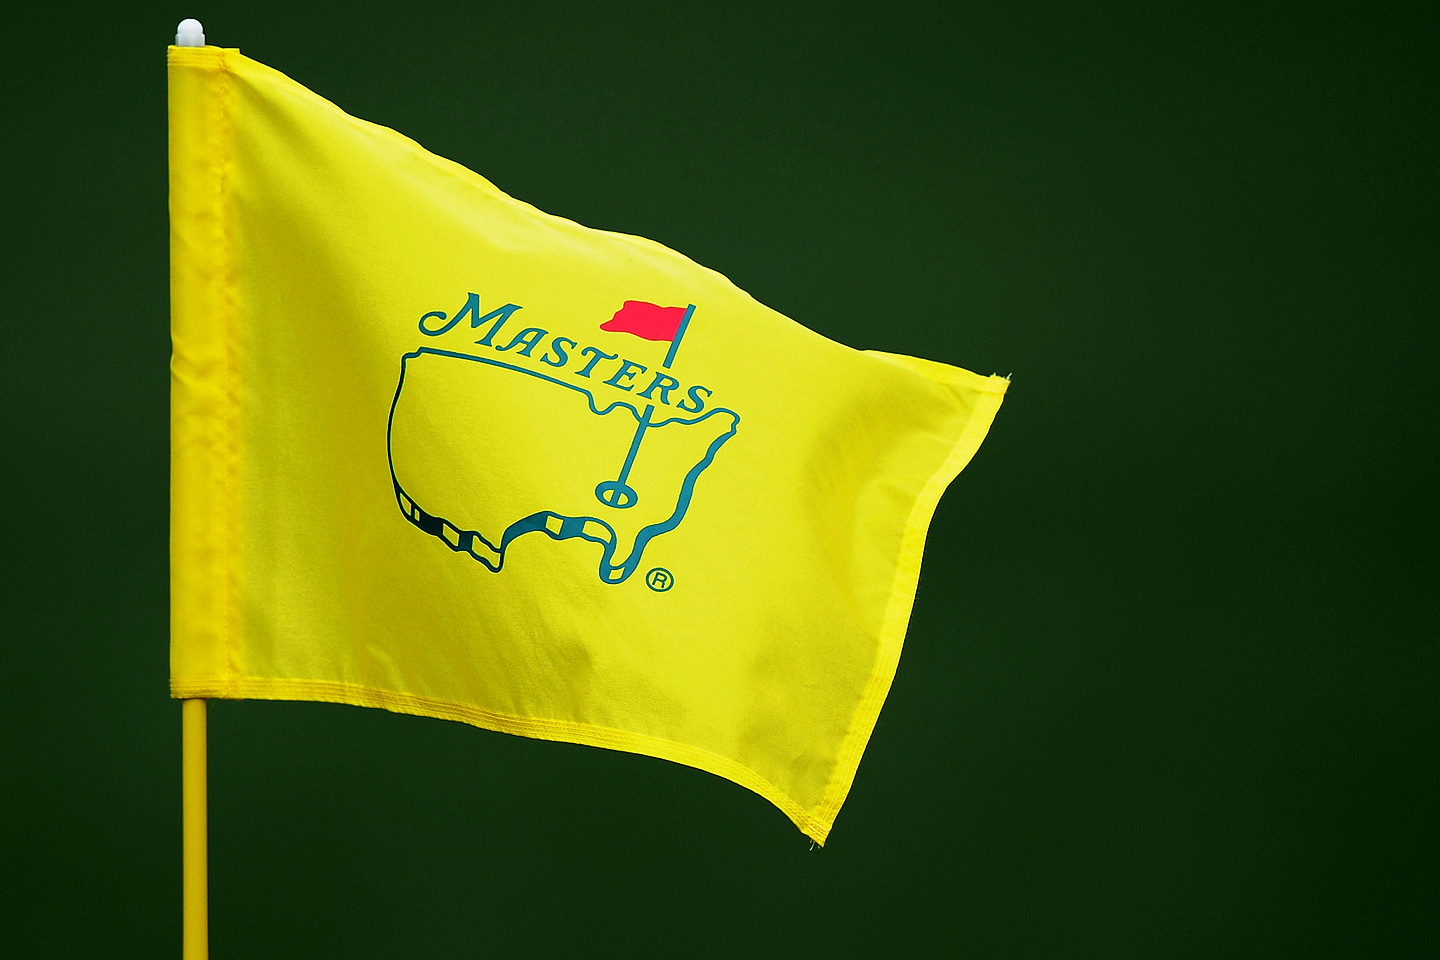 Masters flagstick